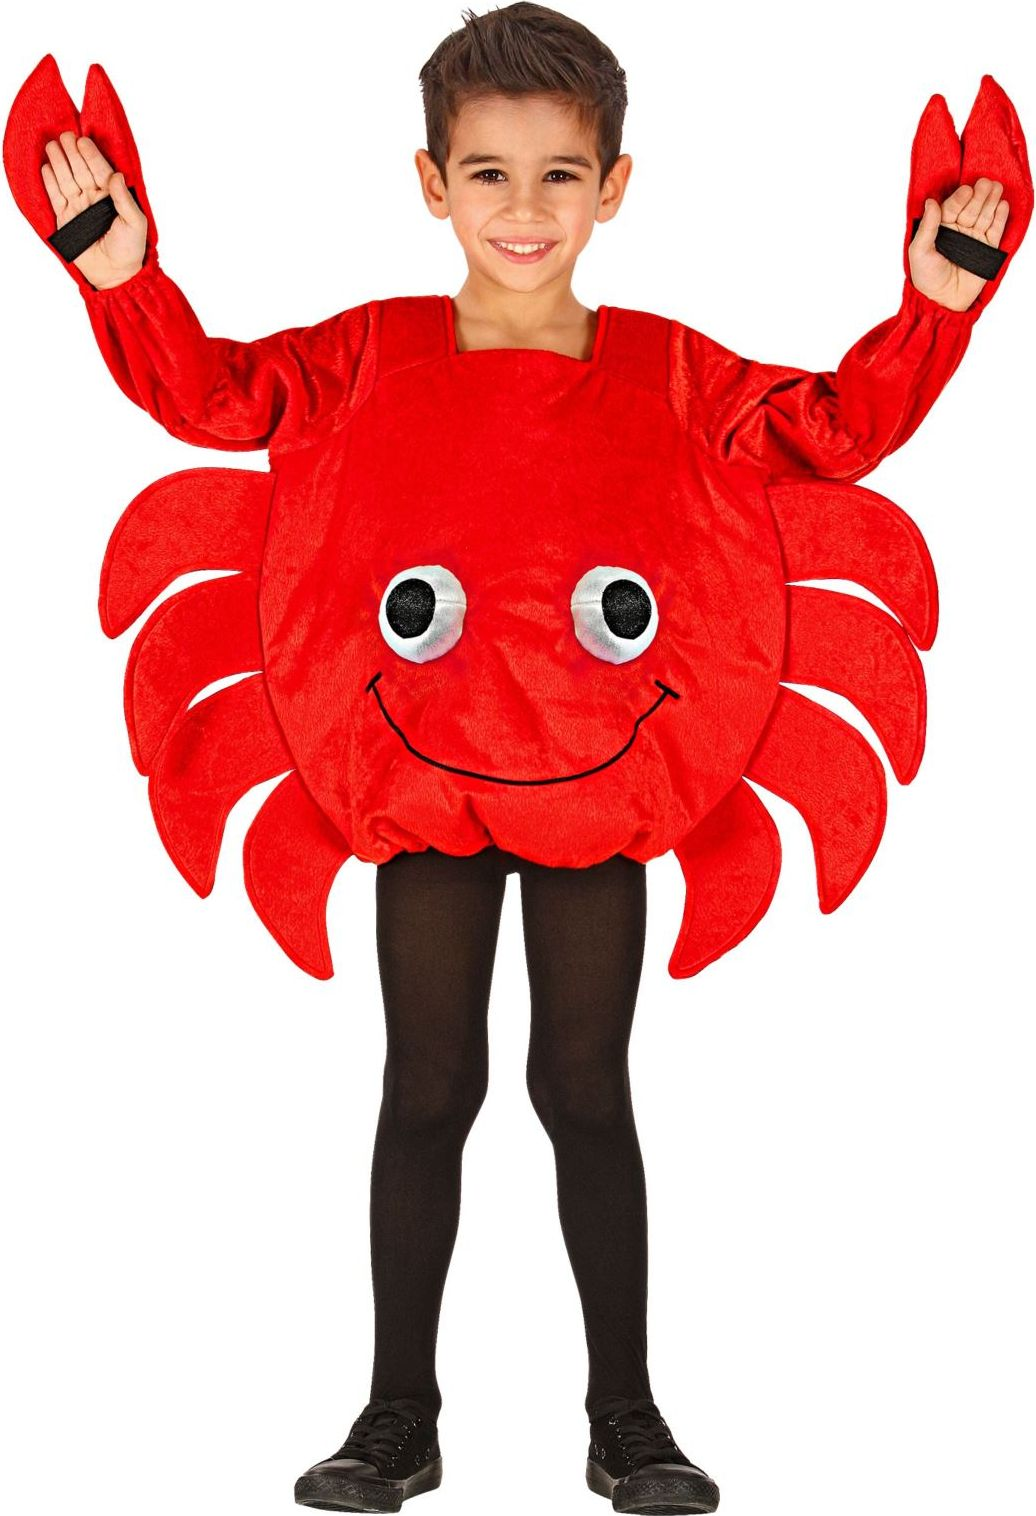 Krab outfit kind